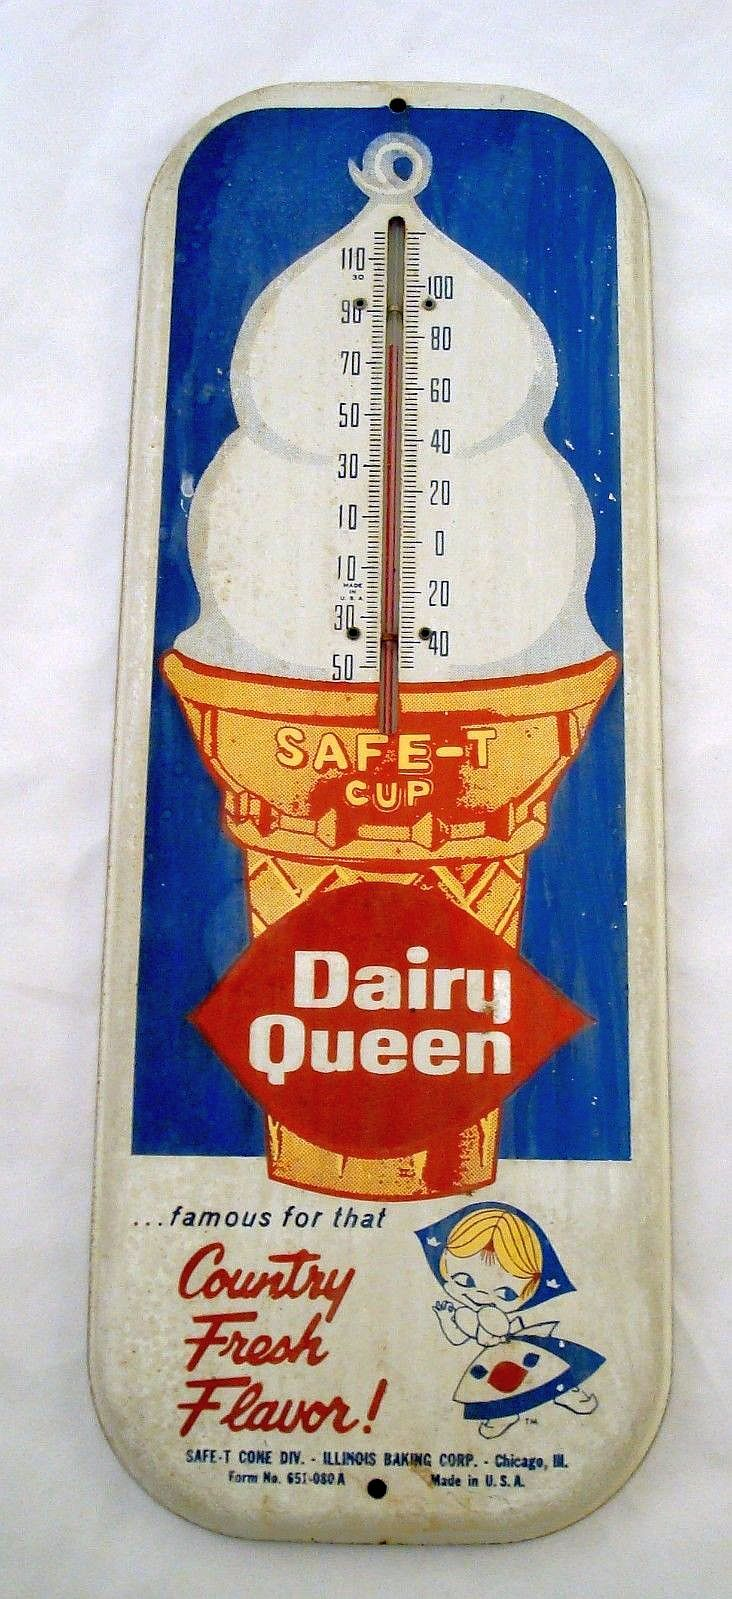 "Dairy Queen Vintage Thermometer (Old 1940 Antique Ice Cream Cone Dessert Advertising Sign, Safe-T Cup, ""Country Fresh Flavor!"")Biddy Craft"